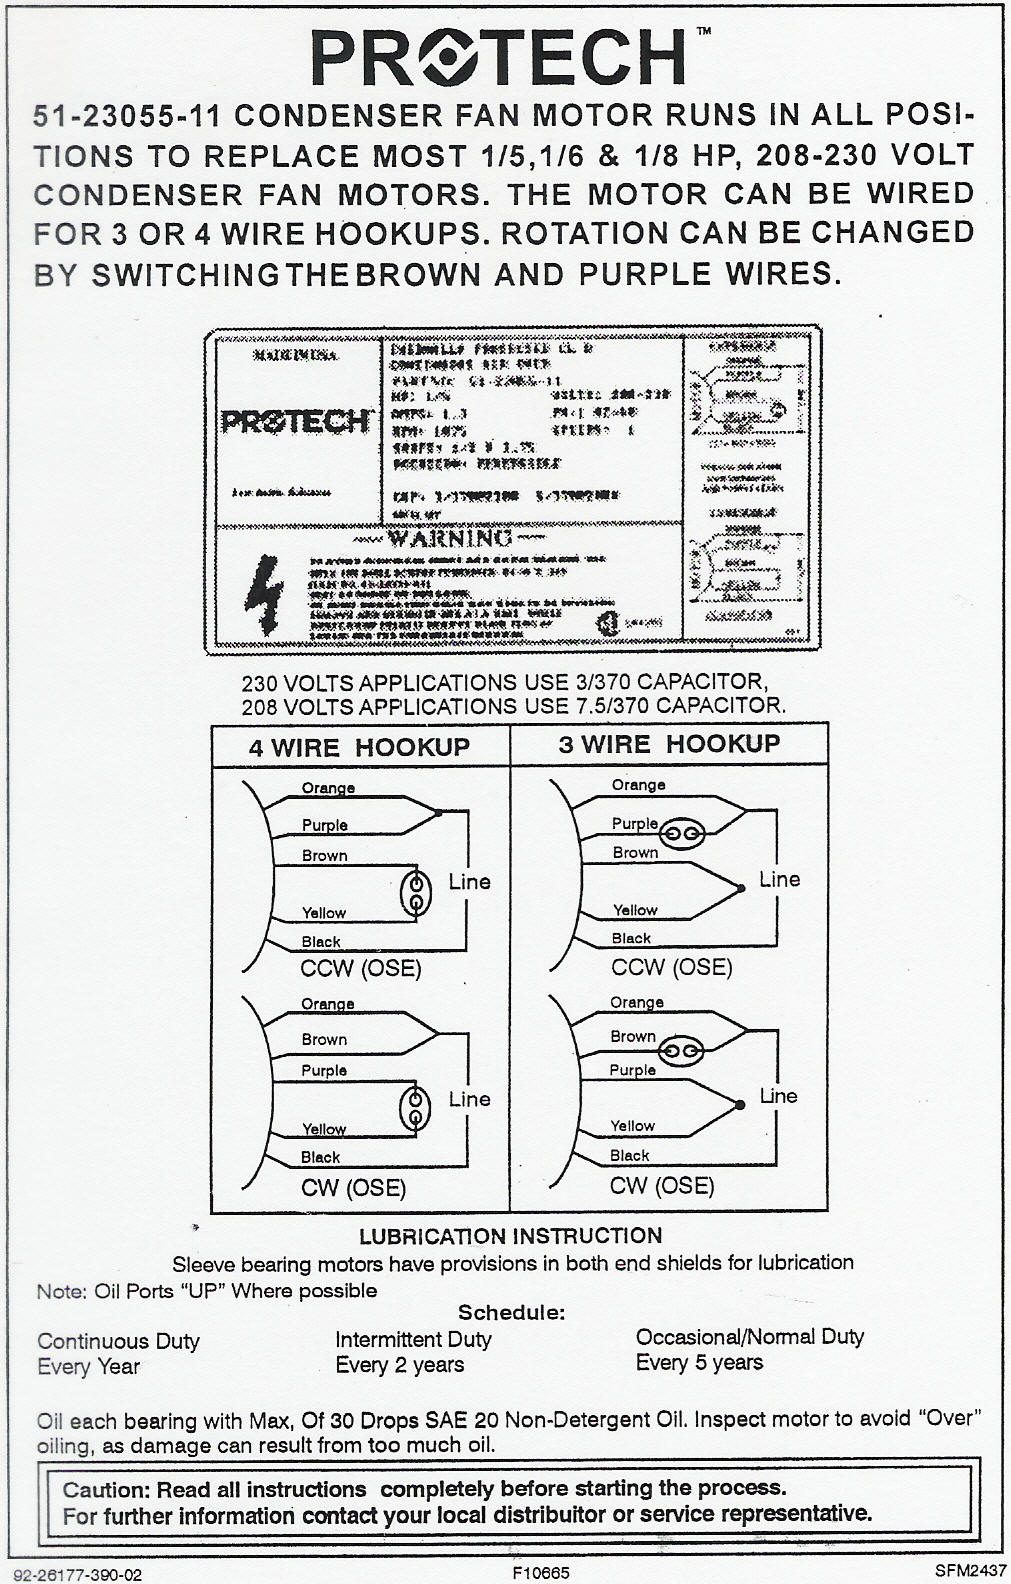 51 23055 11 wiring diagram rheem ruud condenser fan motor 51 23055 11 wiring diagram rheem furnace wiring diagram at crackthecode.co